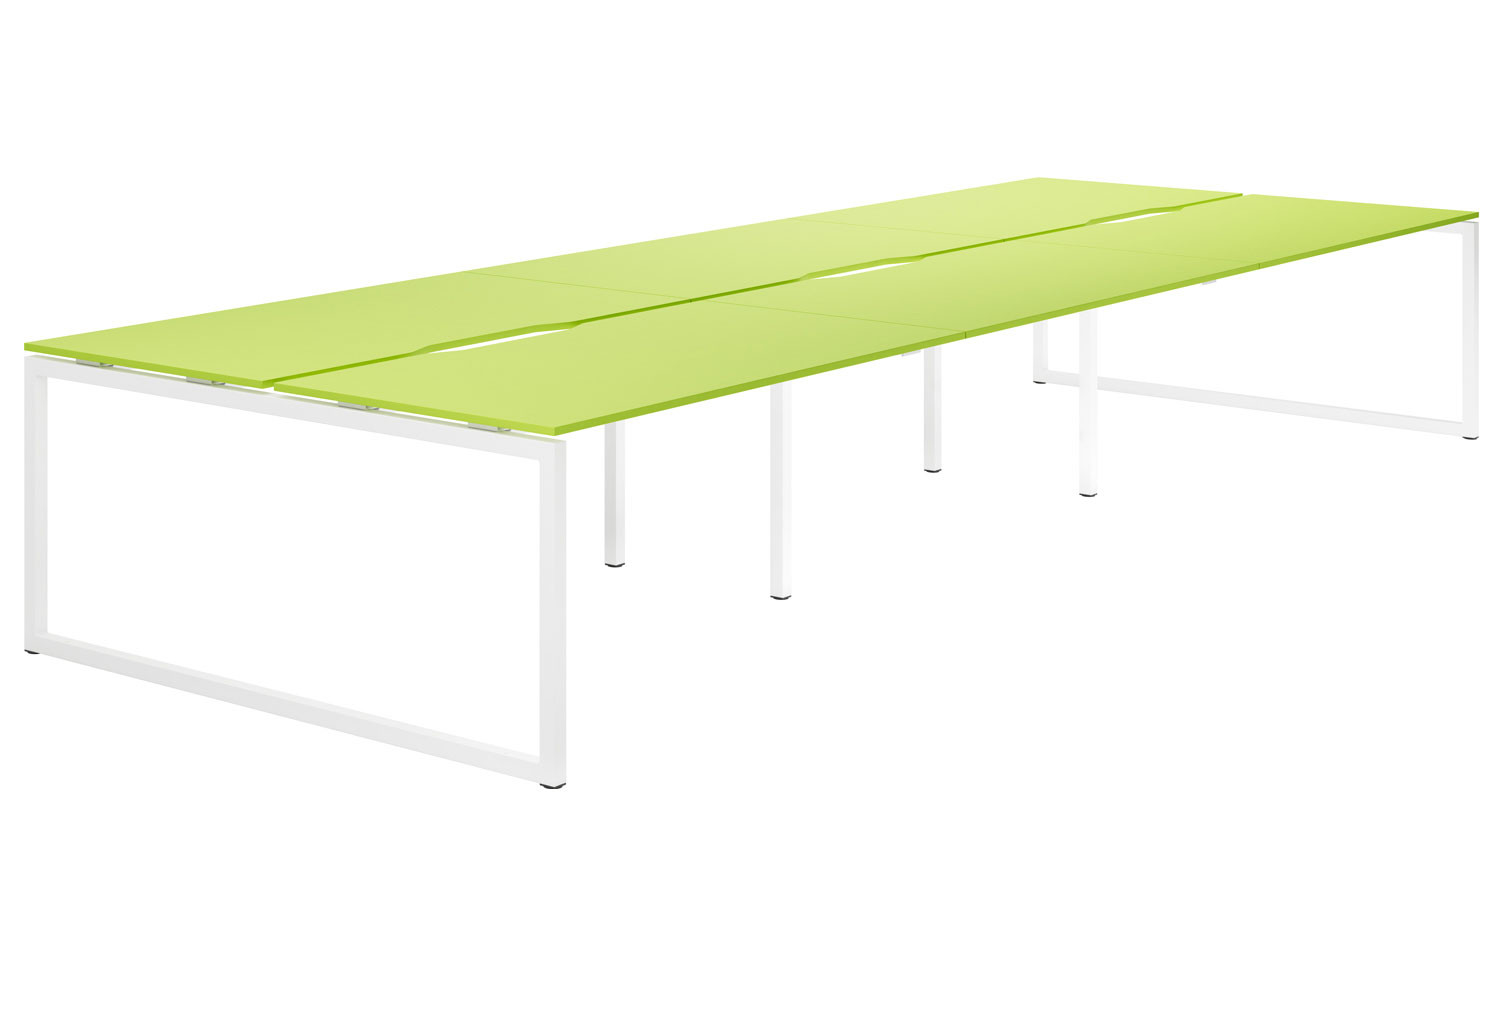 Campos Hooped Leg 6 Person Back To Back Bench Desk (Green)